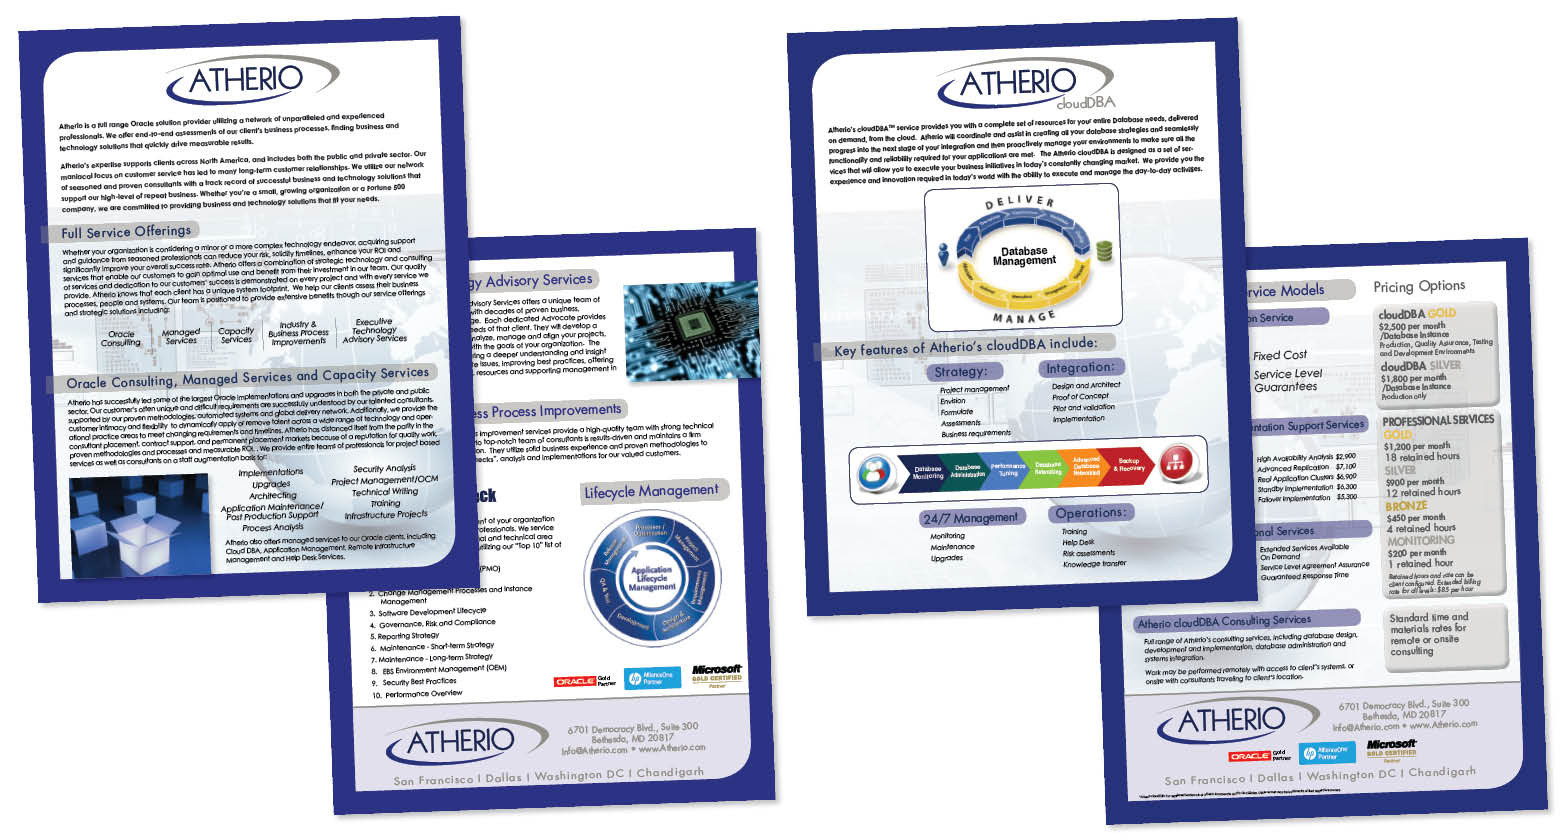 Atherio White Papers